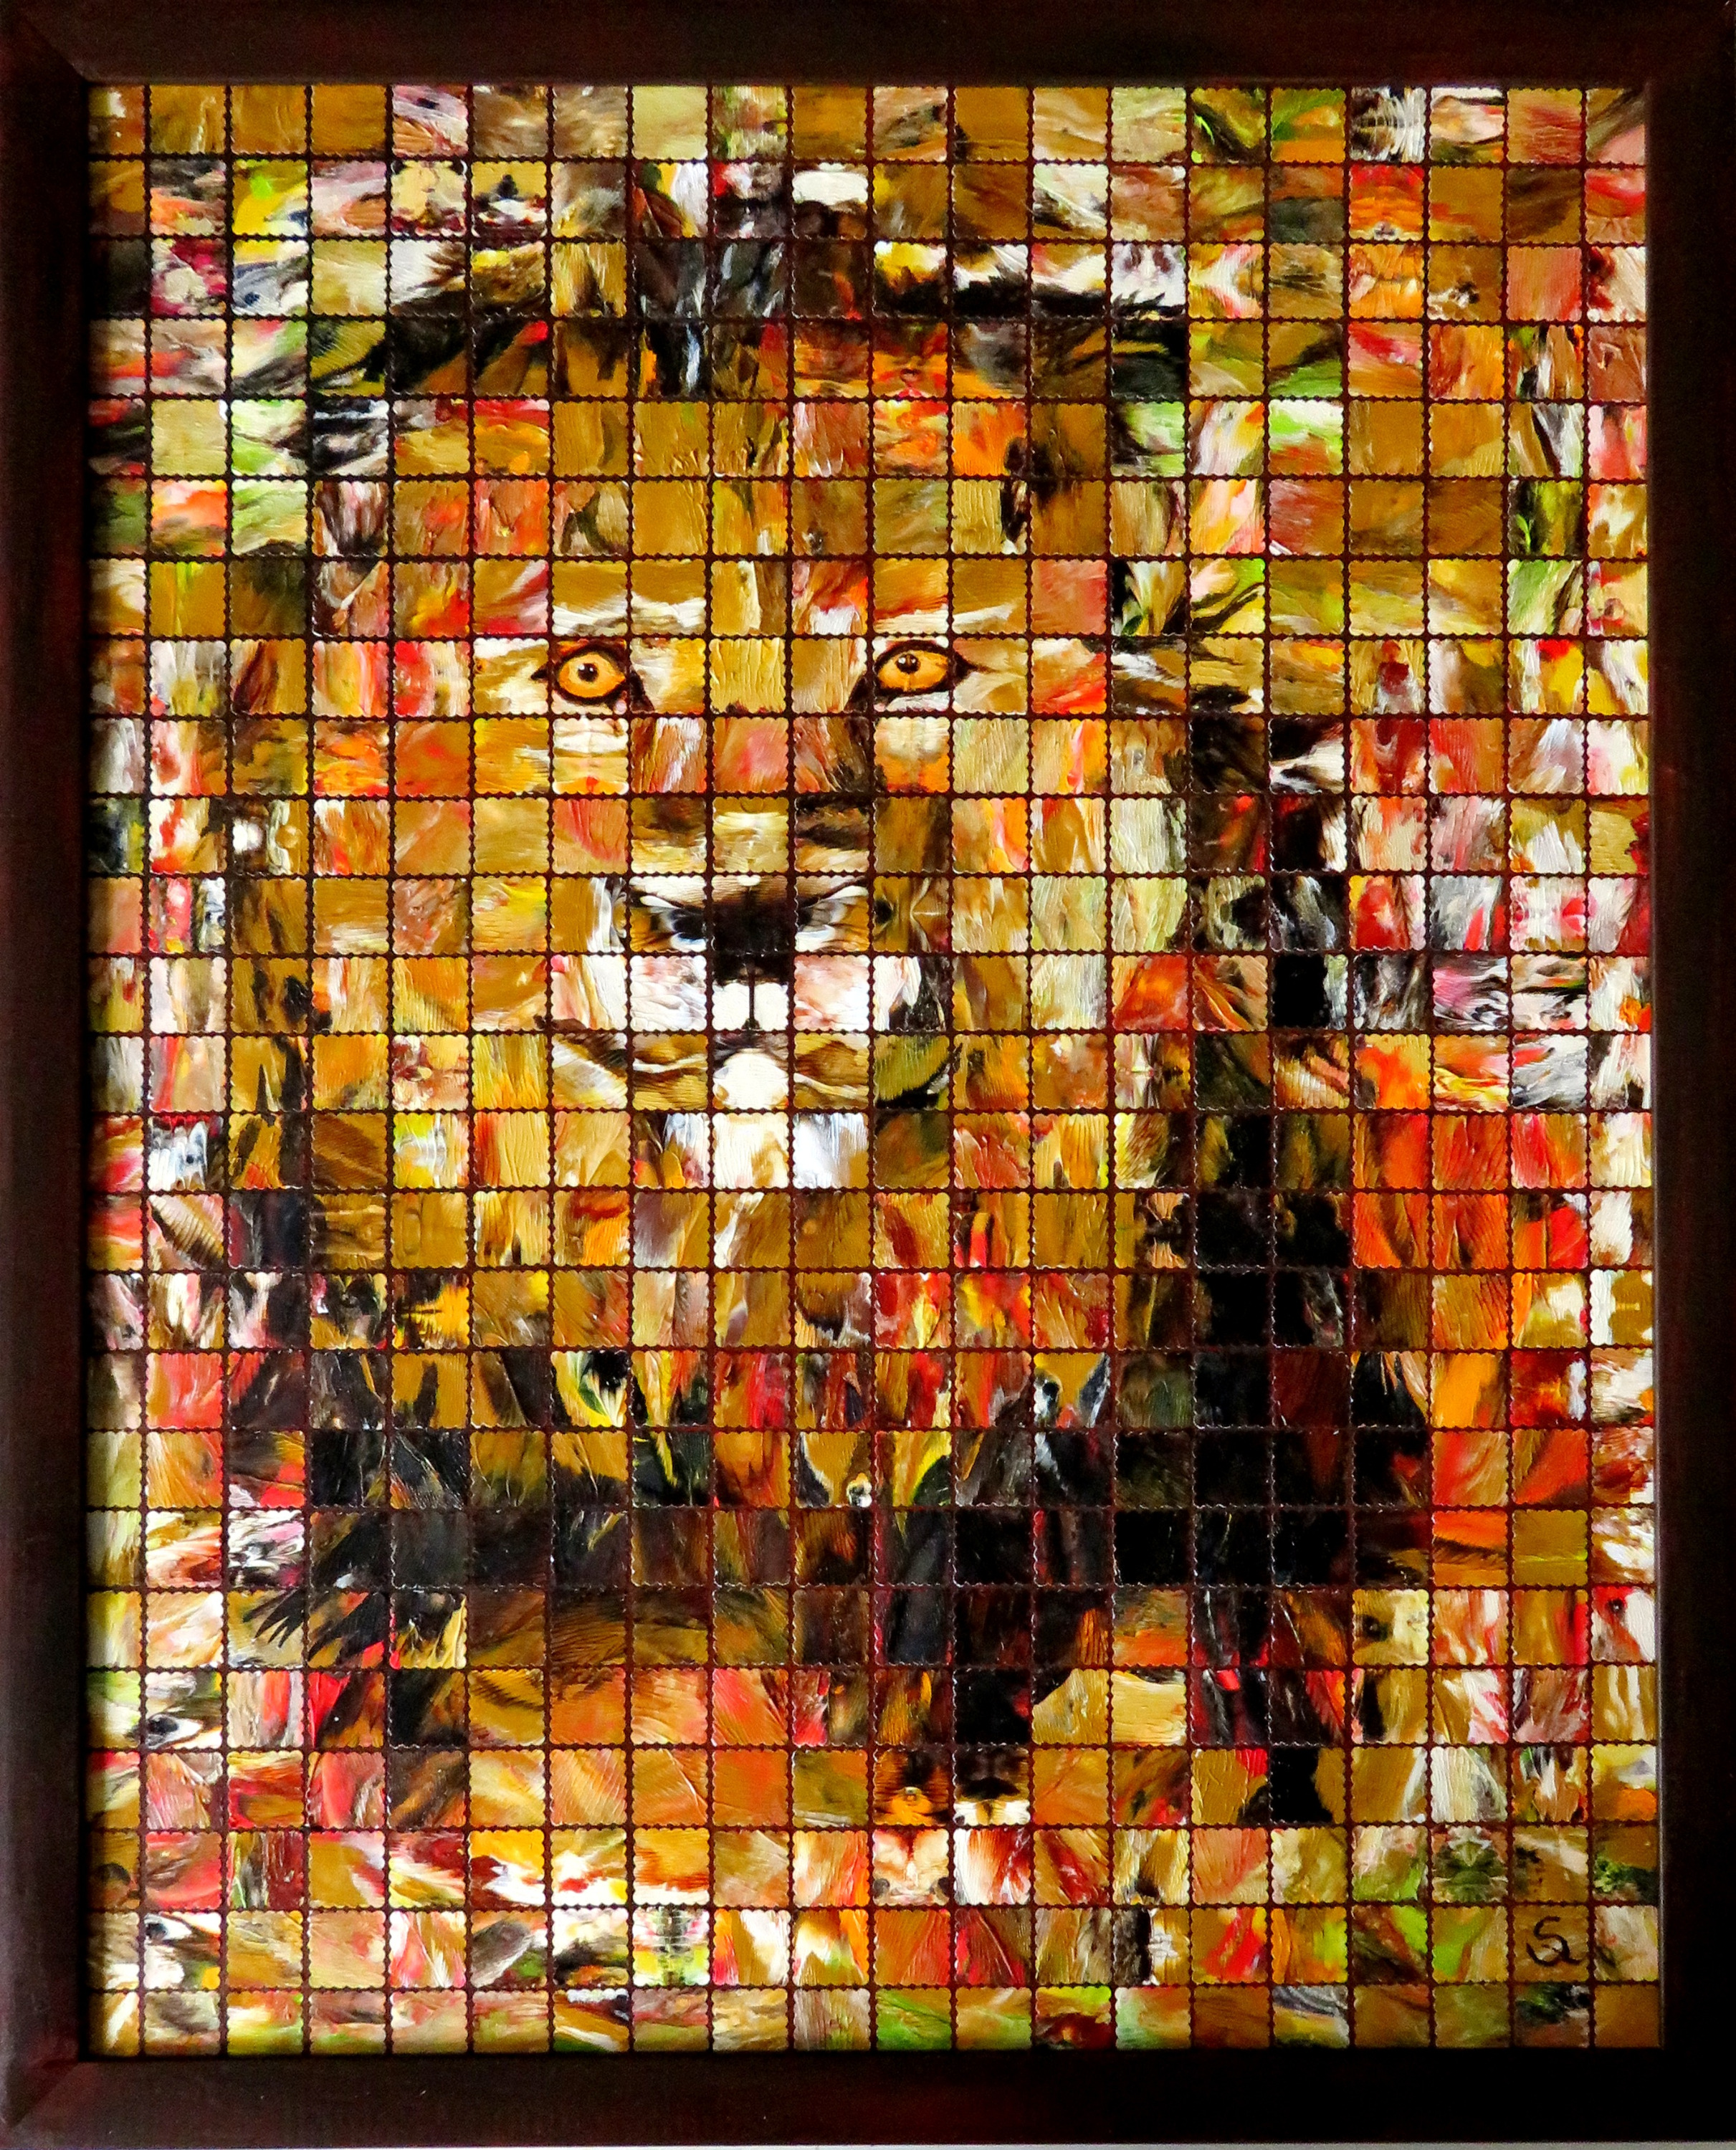 The King (53x43)  Art in Art_bearbeitet.